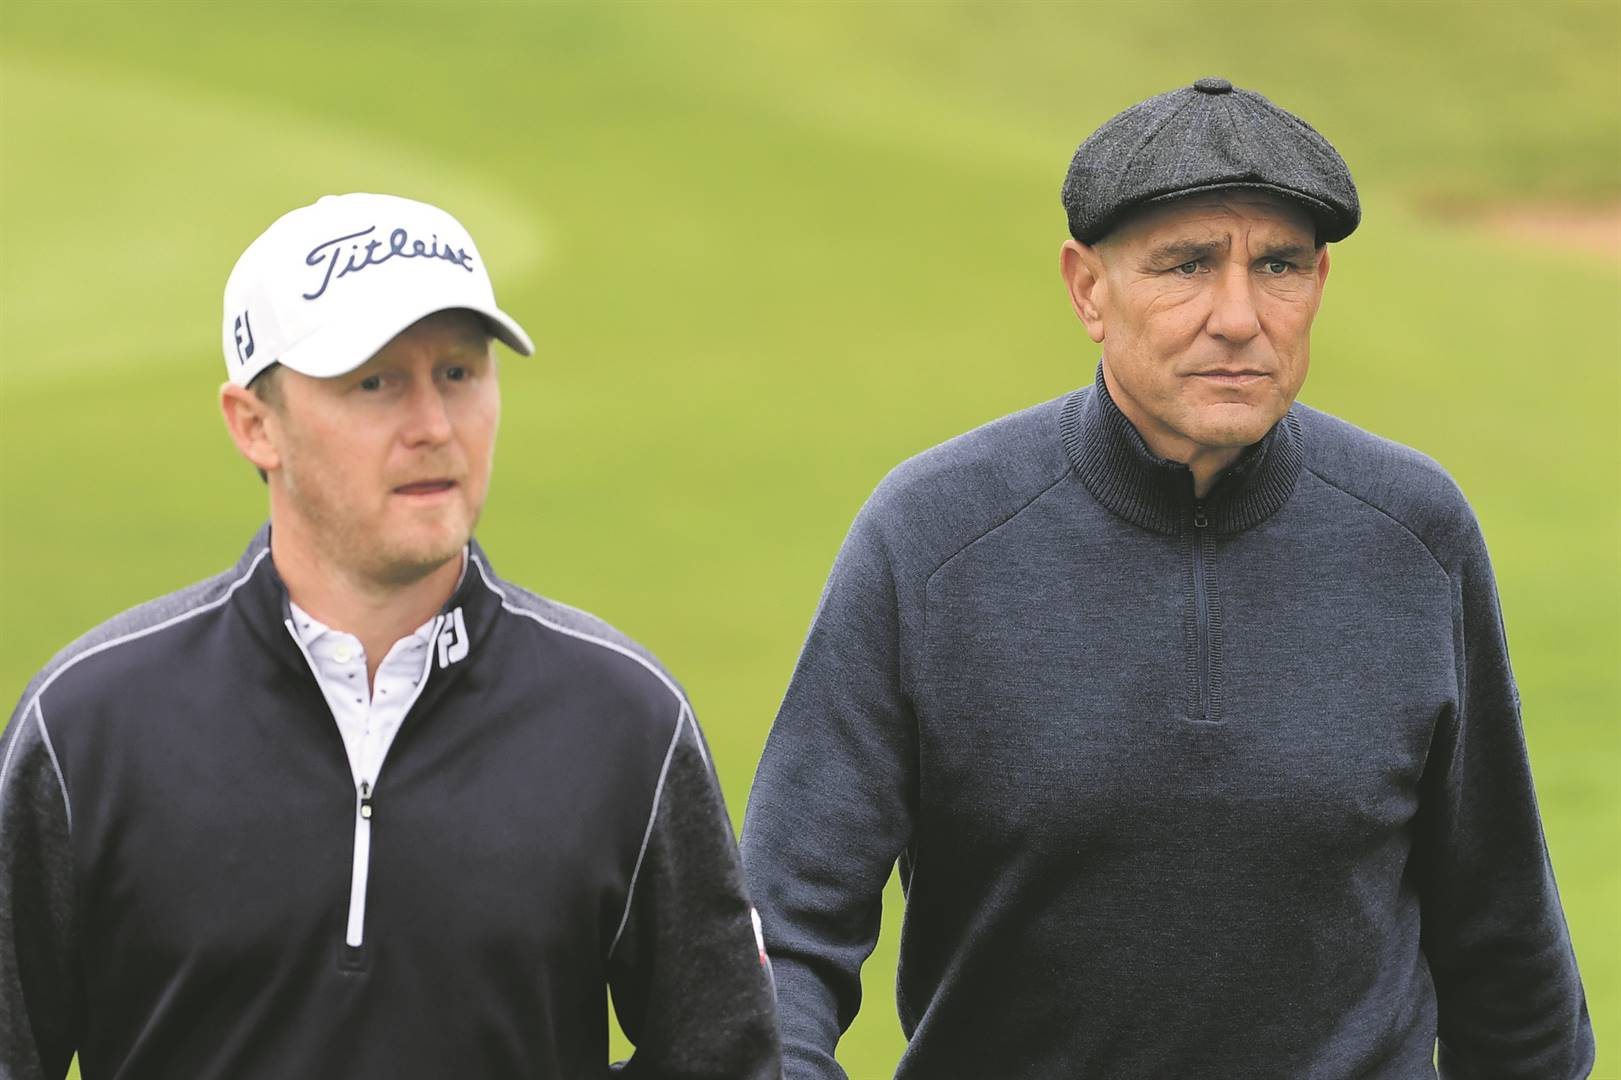 Justin Harding and Vinnie Jones have formed a tight bond while playing golf. Picture: Ross Kinnaird / Getty Images